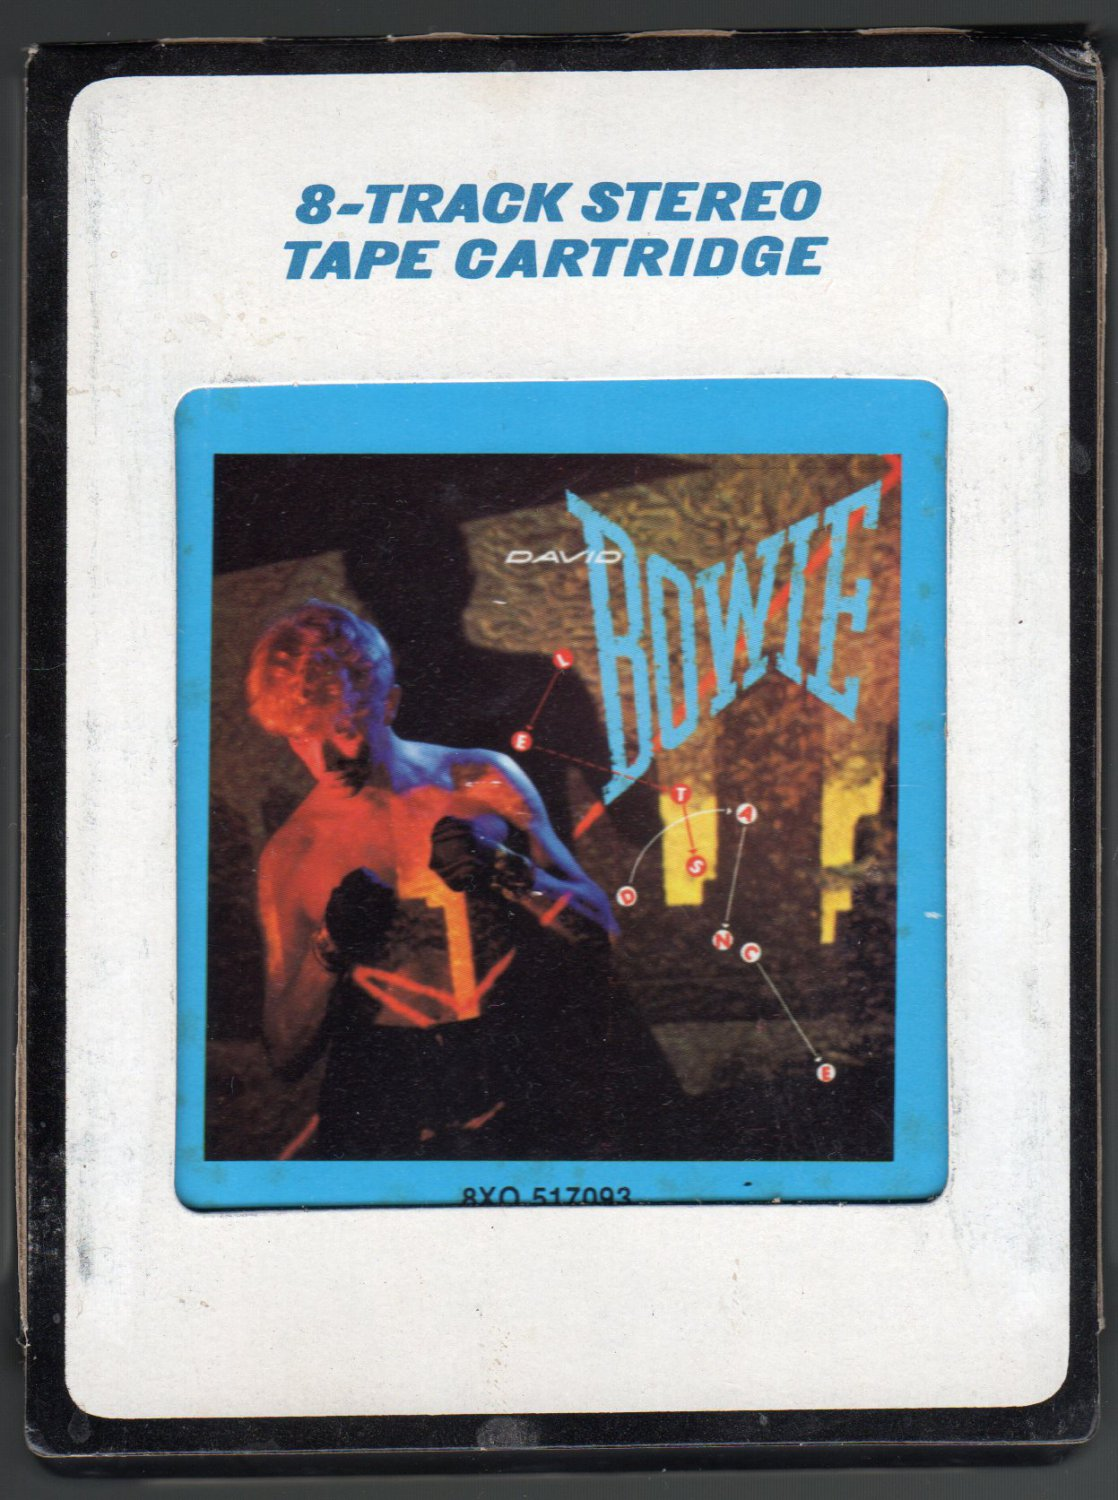 David Bowie - Let's Dance 1983 CRC A4 8-TRACK TAPE